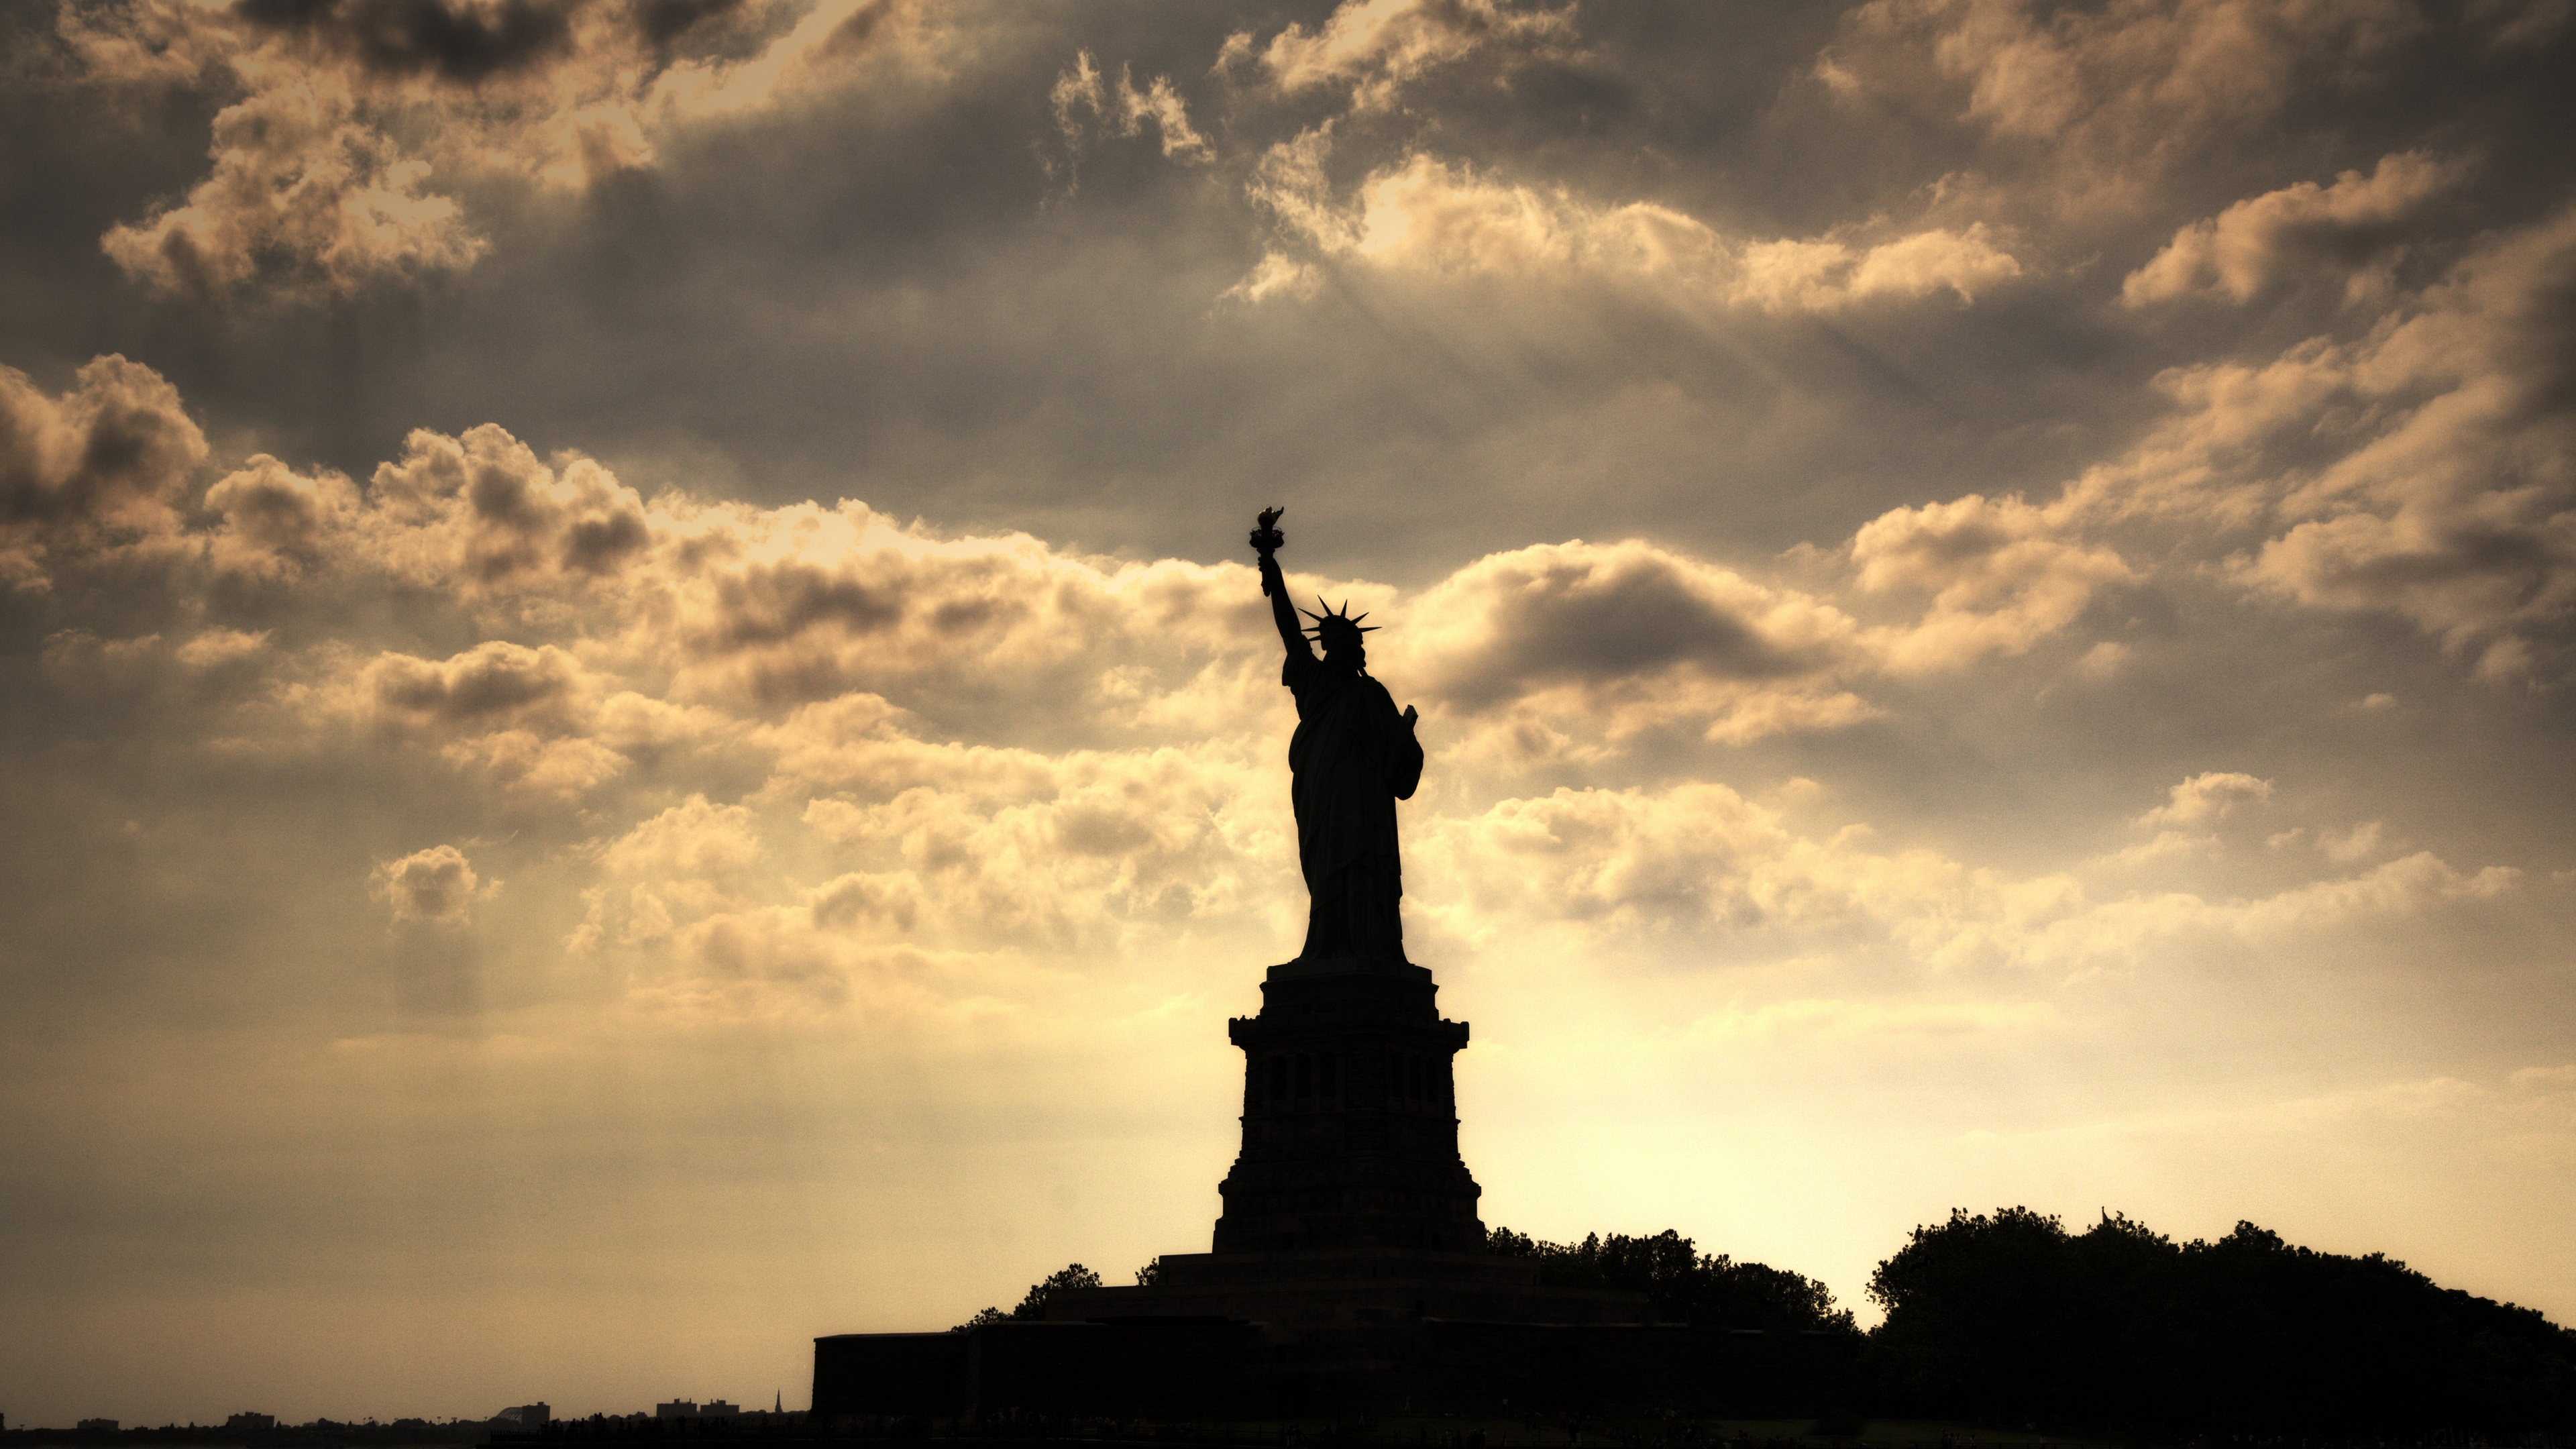 Wallpaper 4k City Statue Statue Of Liberty New York 4k